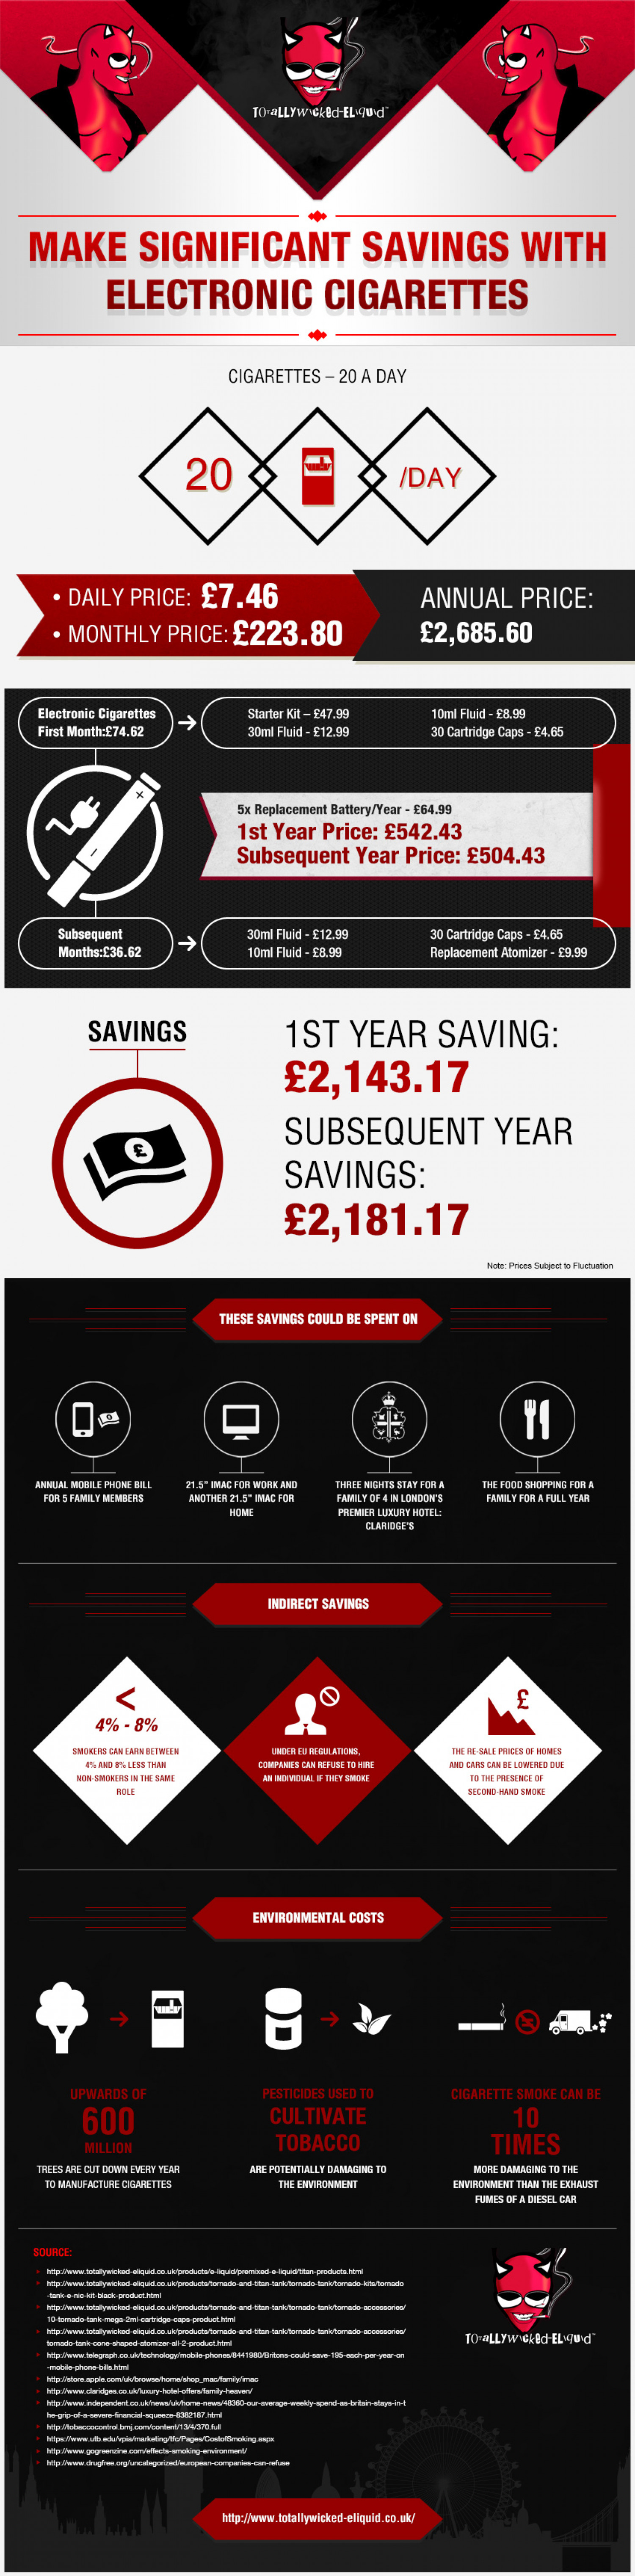 Significant Savings with Electronic Cigarettes Infographic